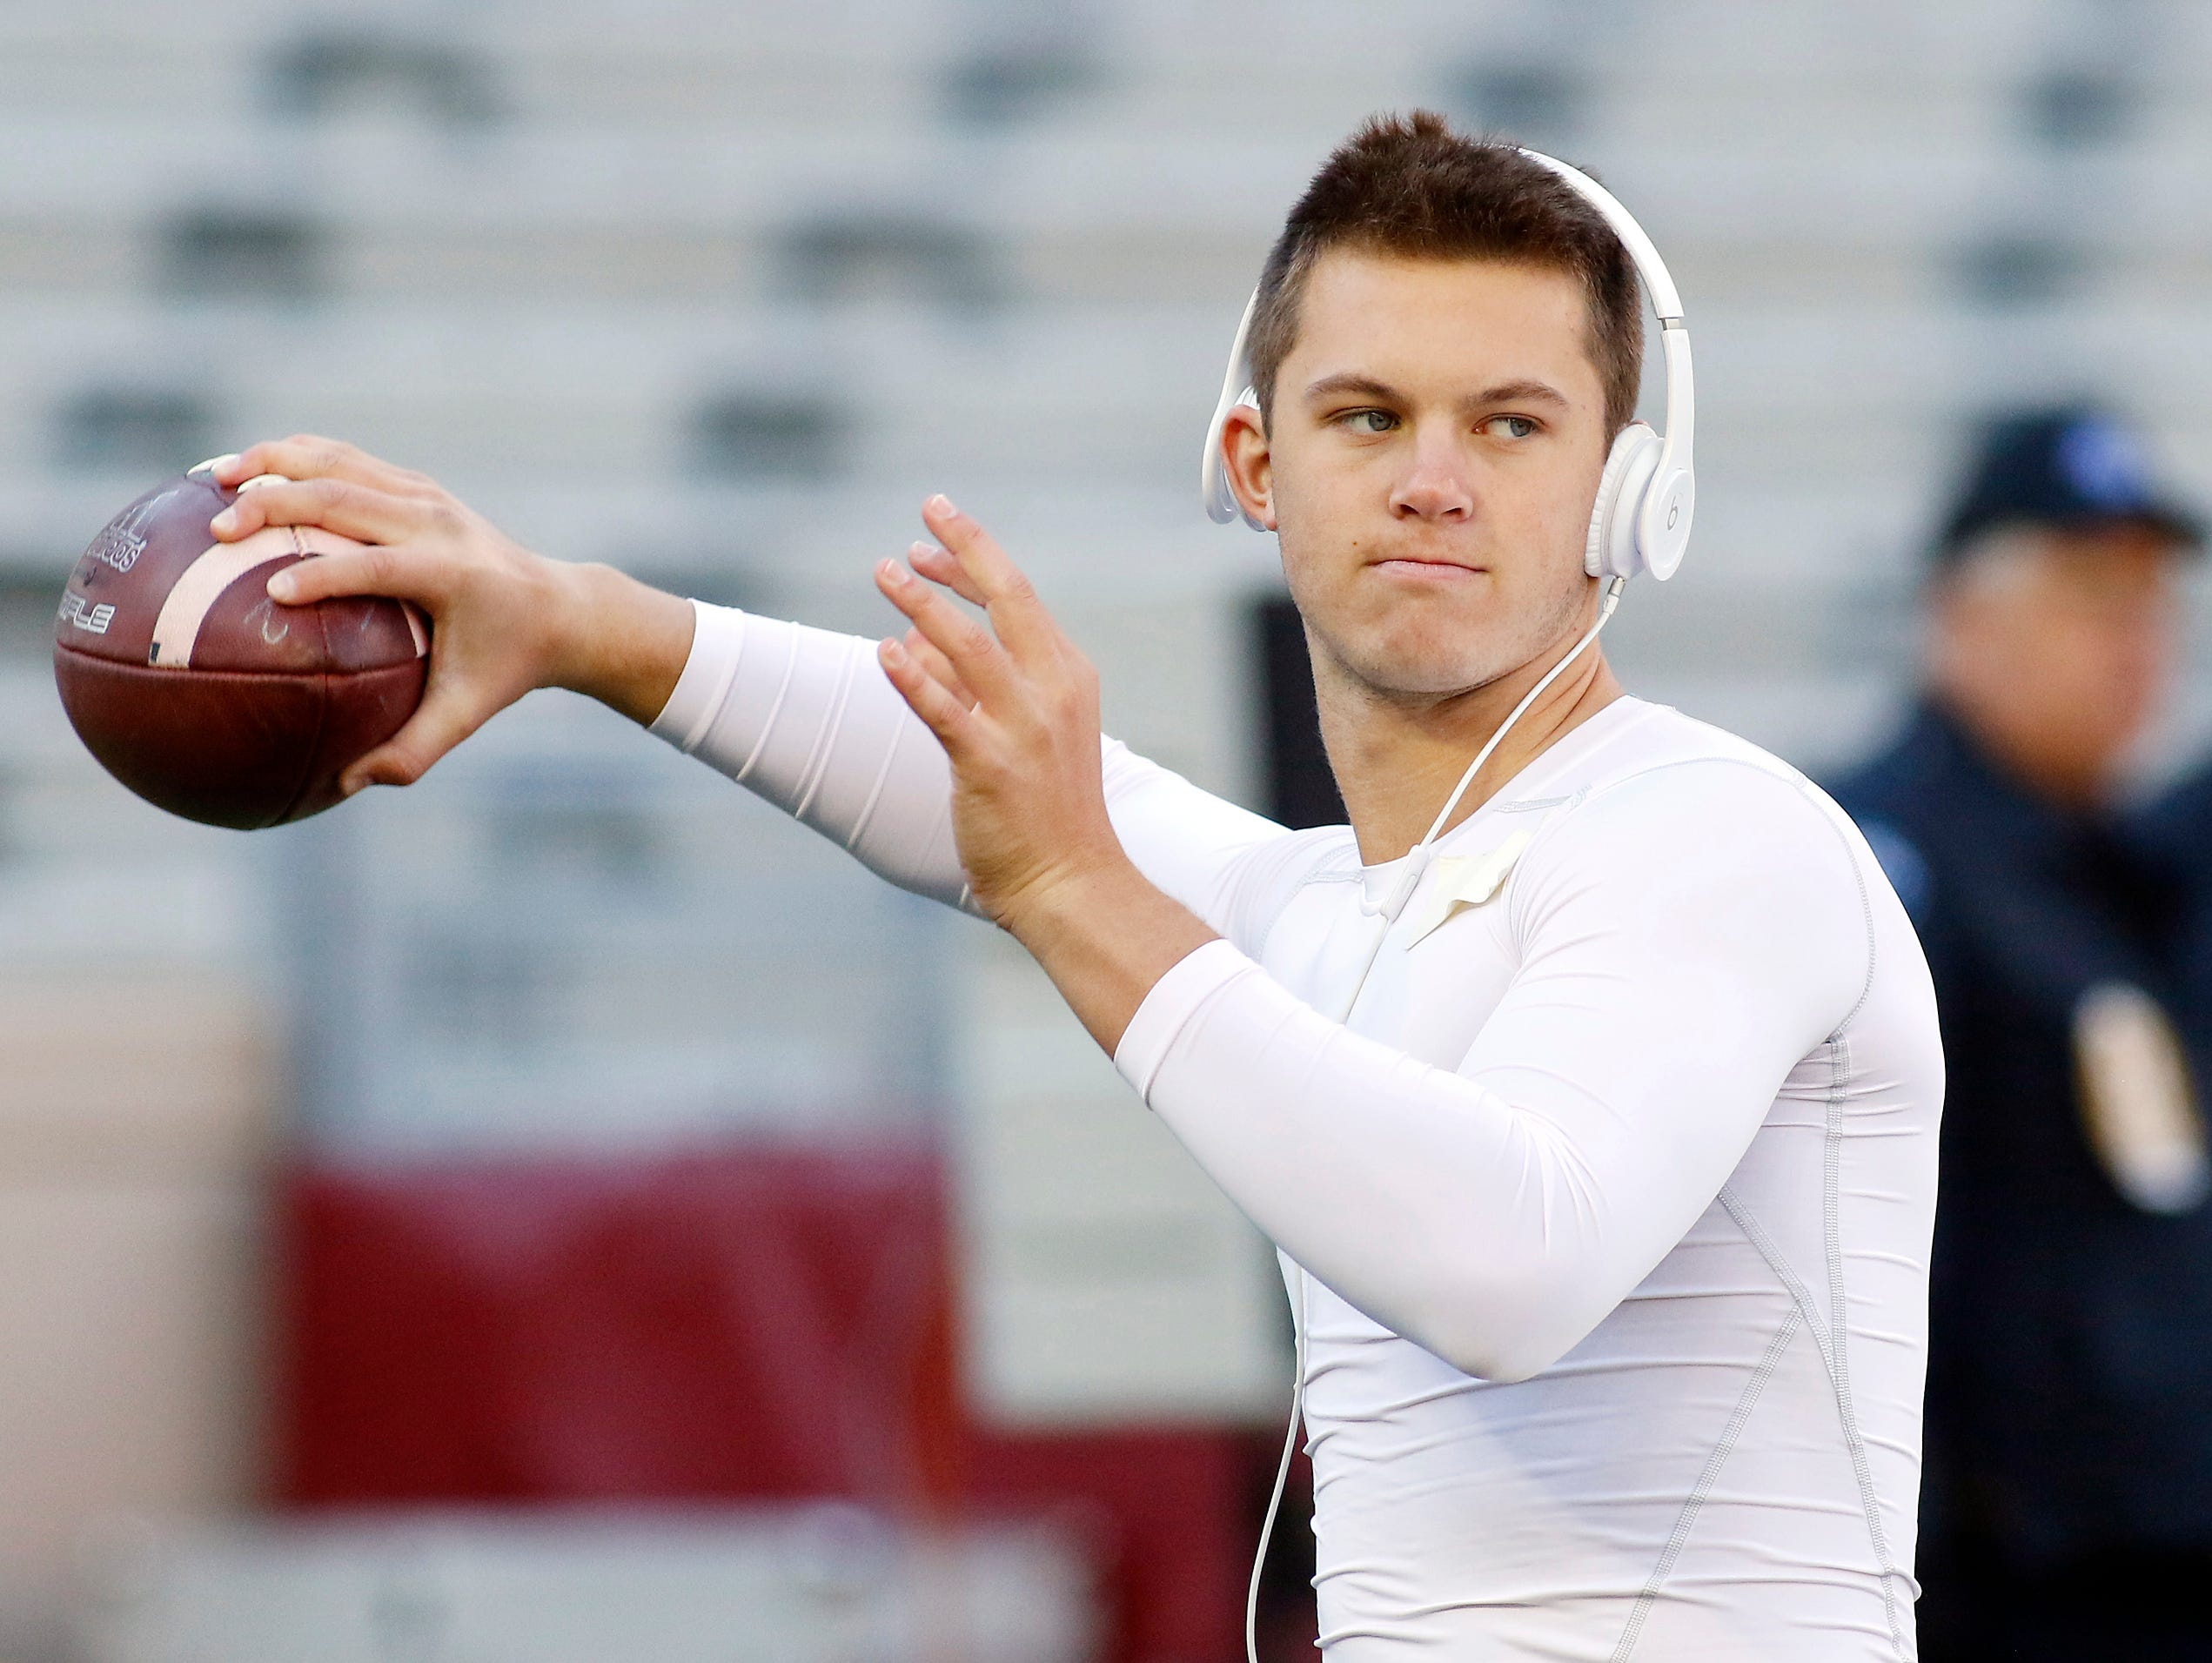 Texas A&M Aggies quarterback Kyle Allen warms up for a game against the Louisiana Monroe Warhawks at Kyle Field on Nov. 1, 2014.